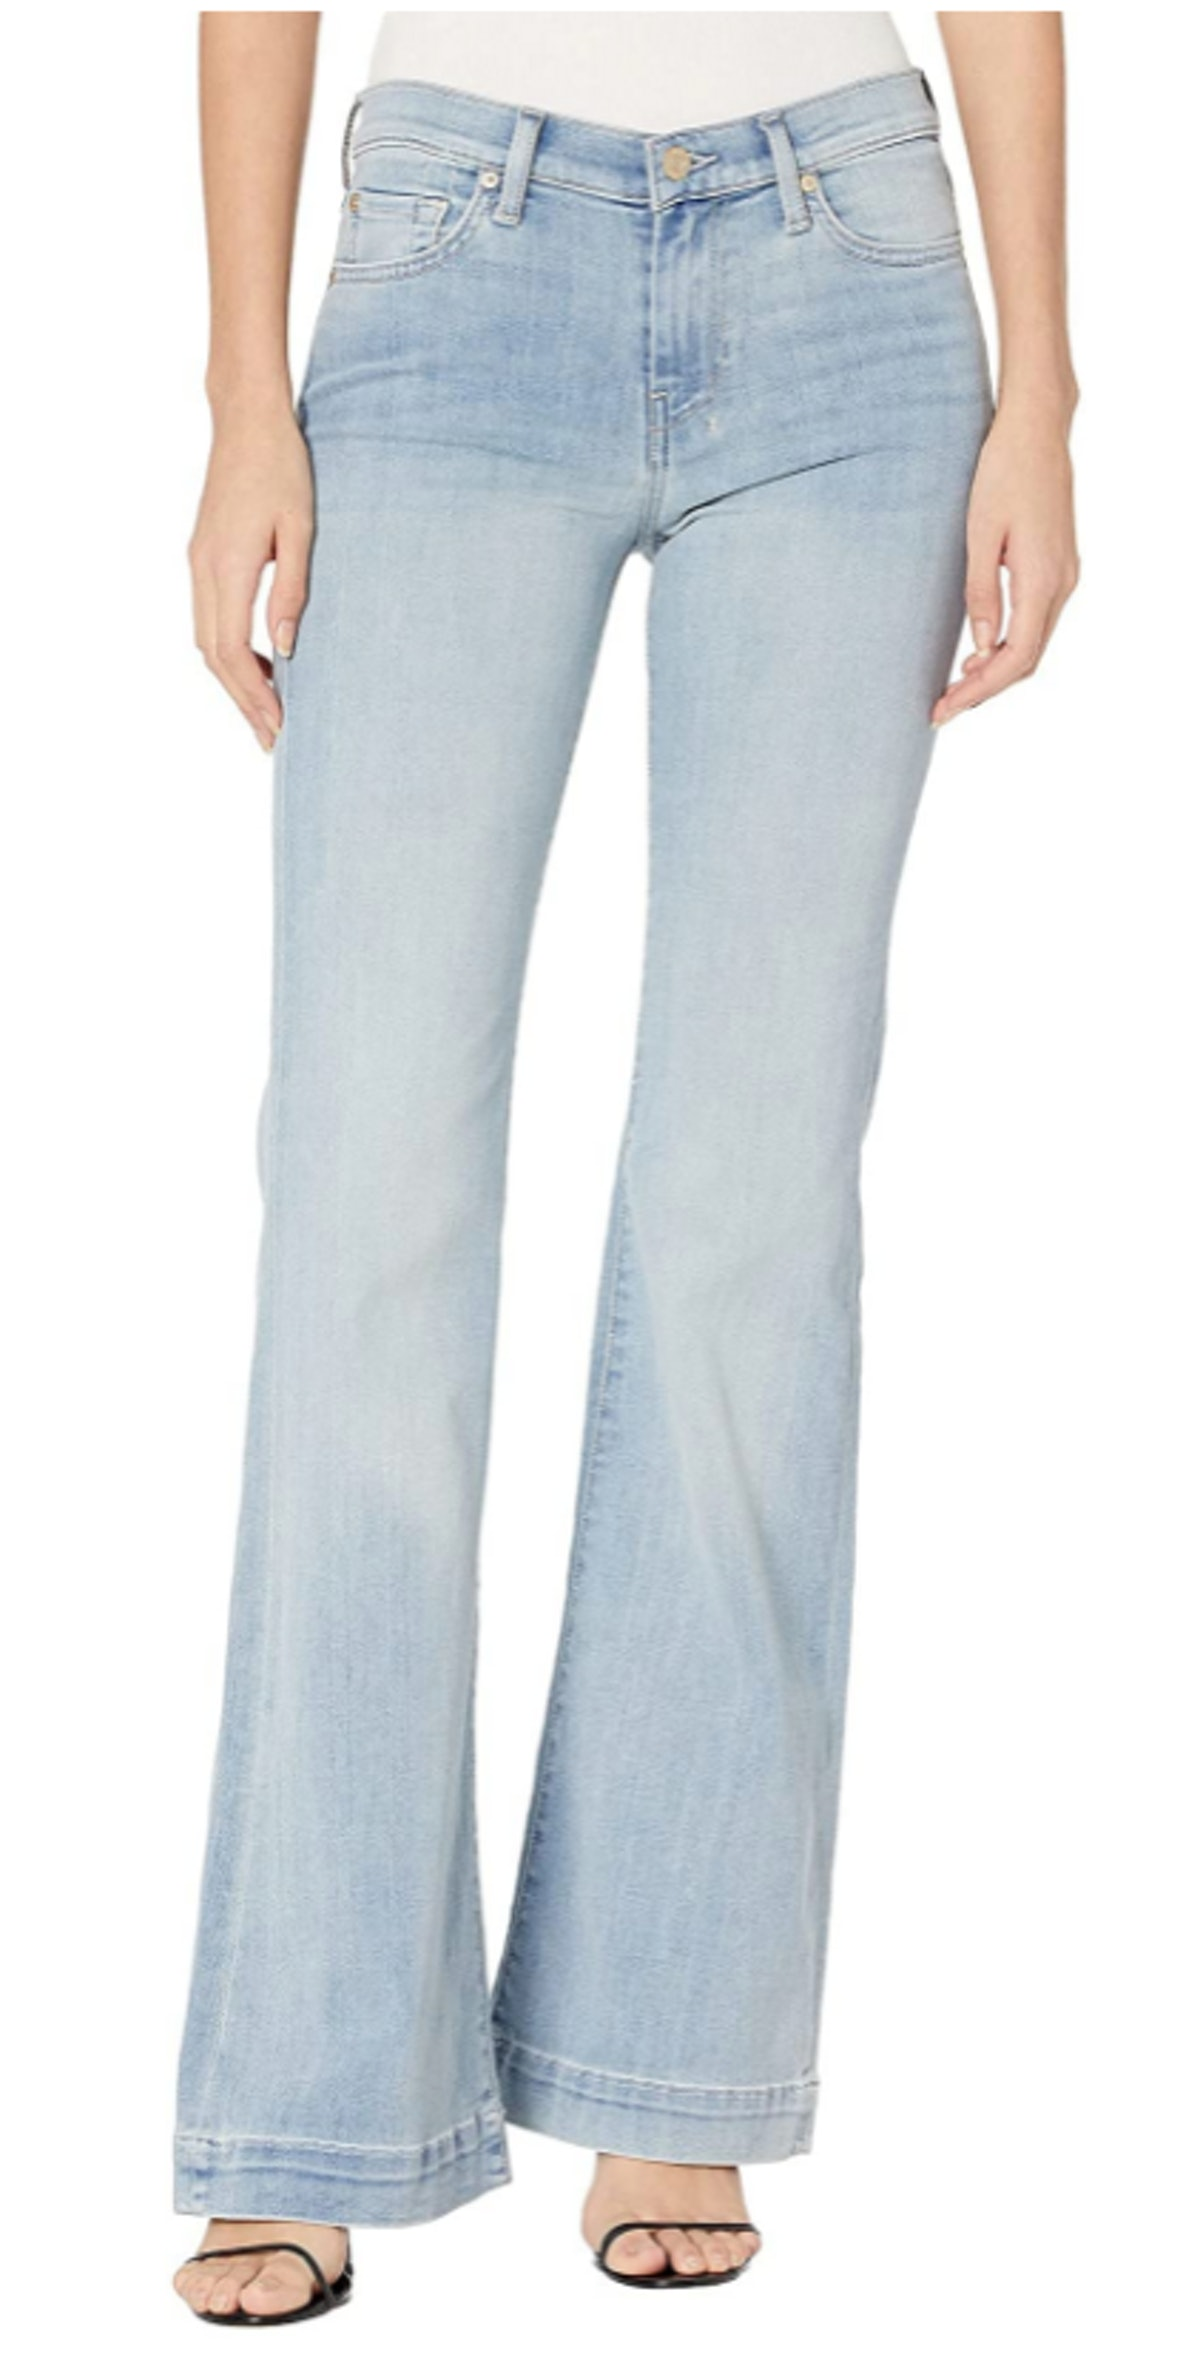 7 For All Mankind flare wide leg jeans.